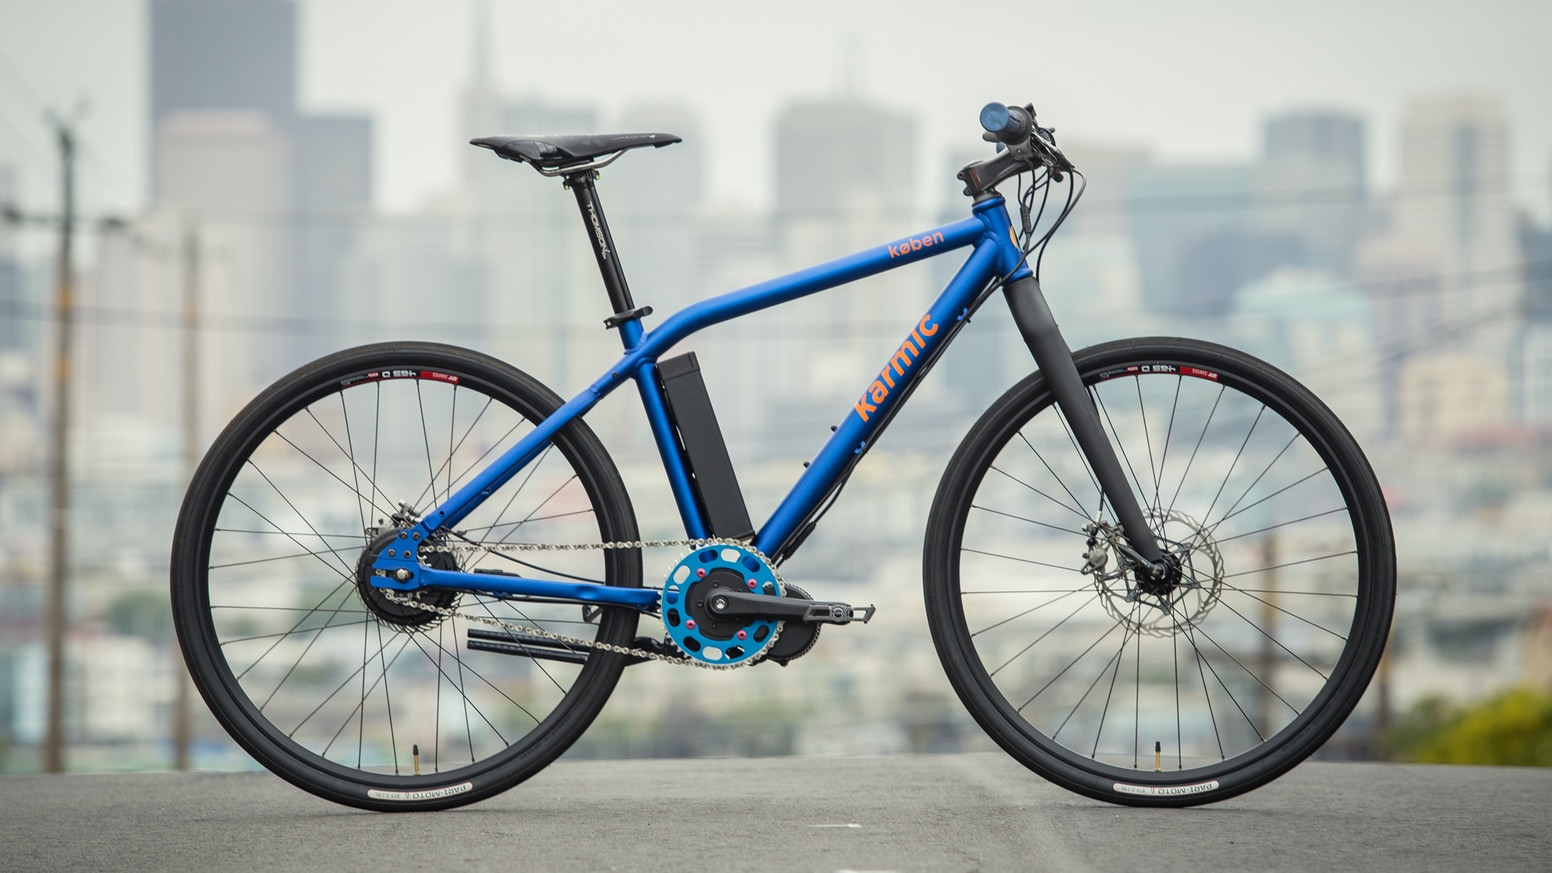 The Karmic Koben is a modern ebike that lets you ride faster, go farther, all while having more fun than ever before.